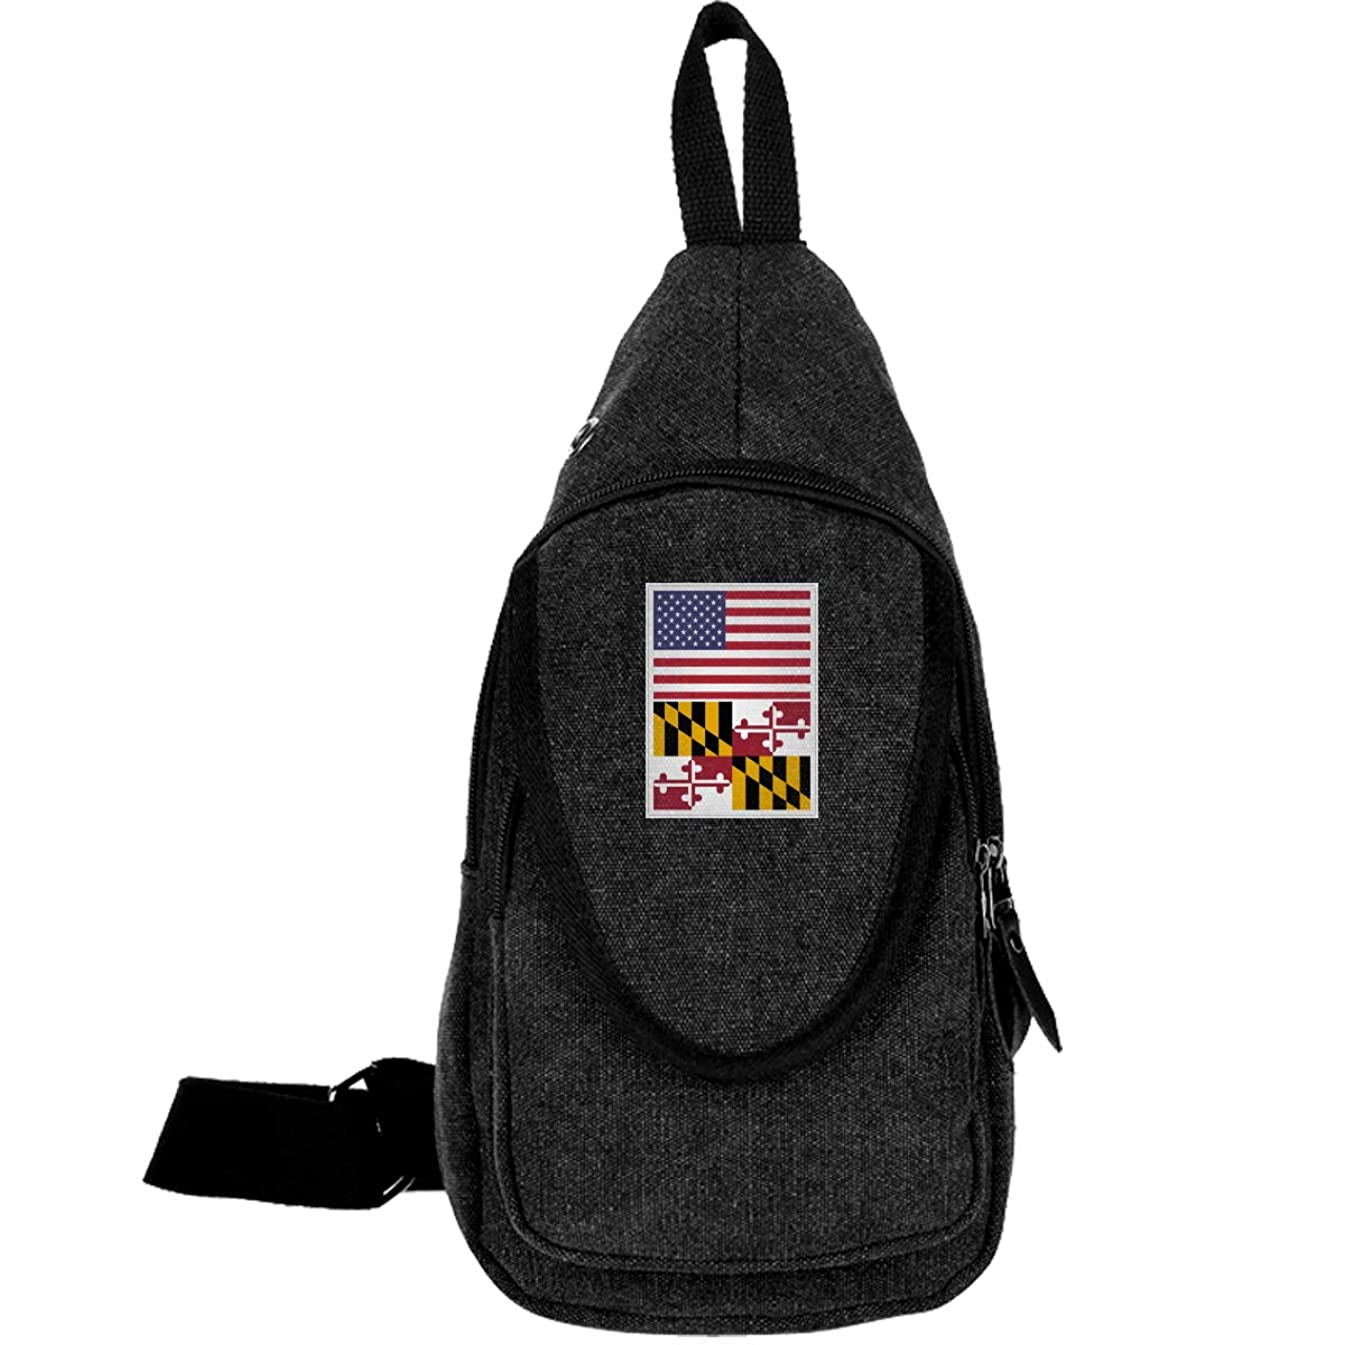 American Flag And Maryland Flag Daypack For Men Women Crossbody Bag Hiking